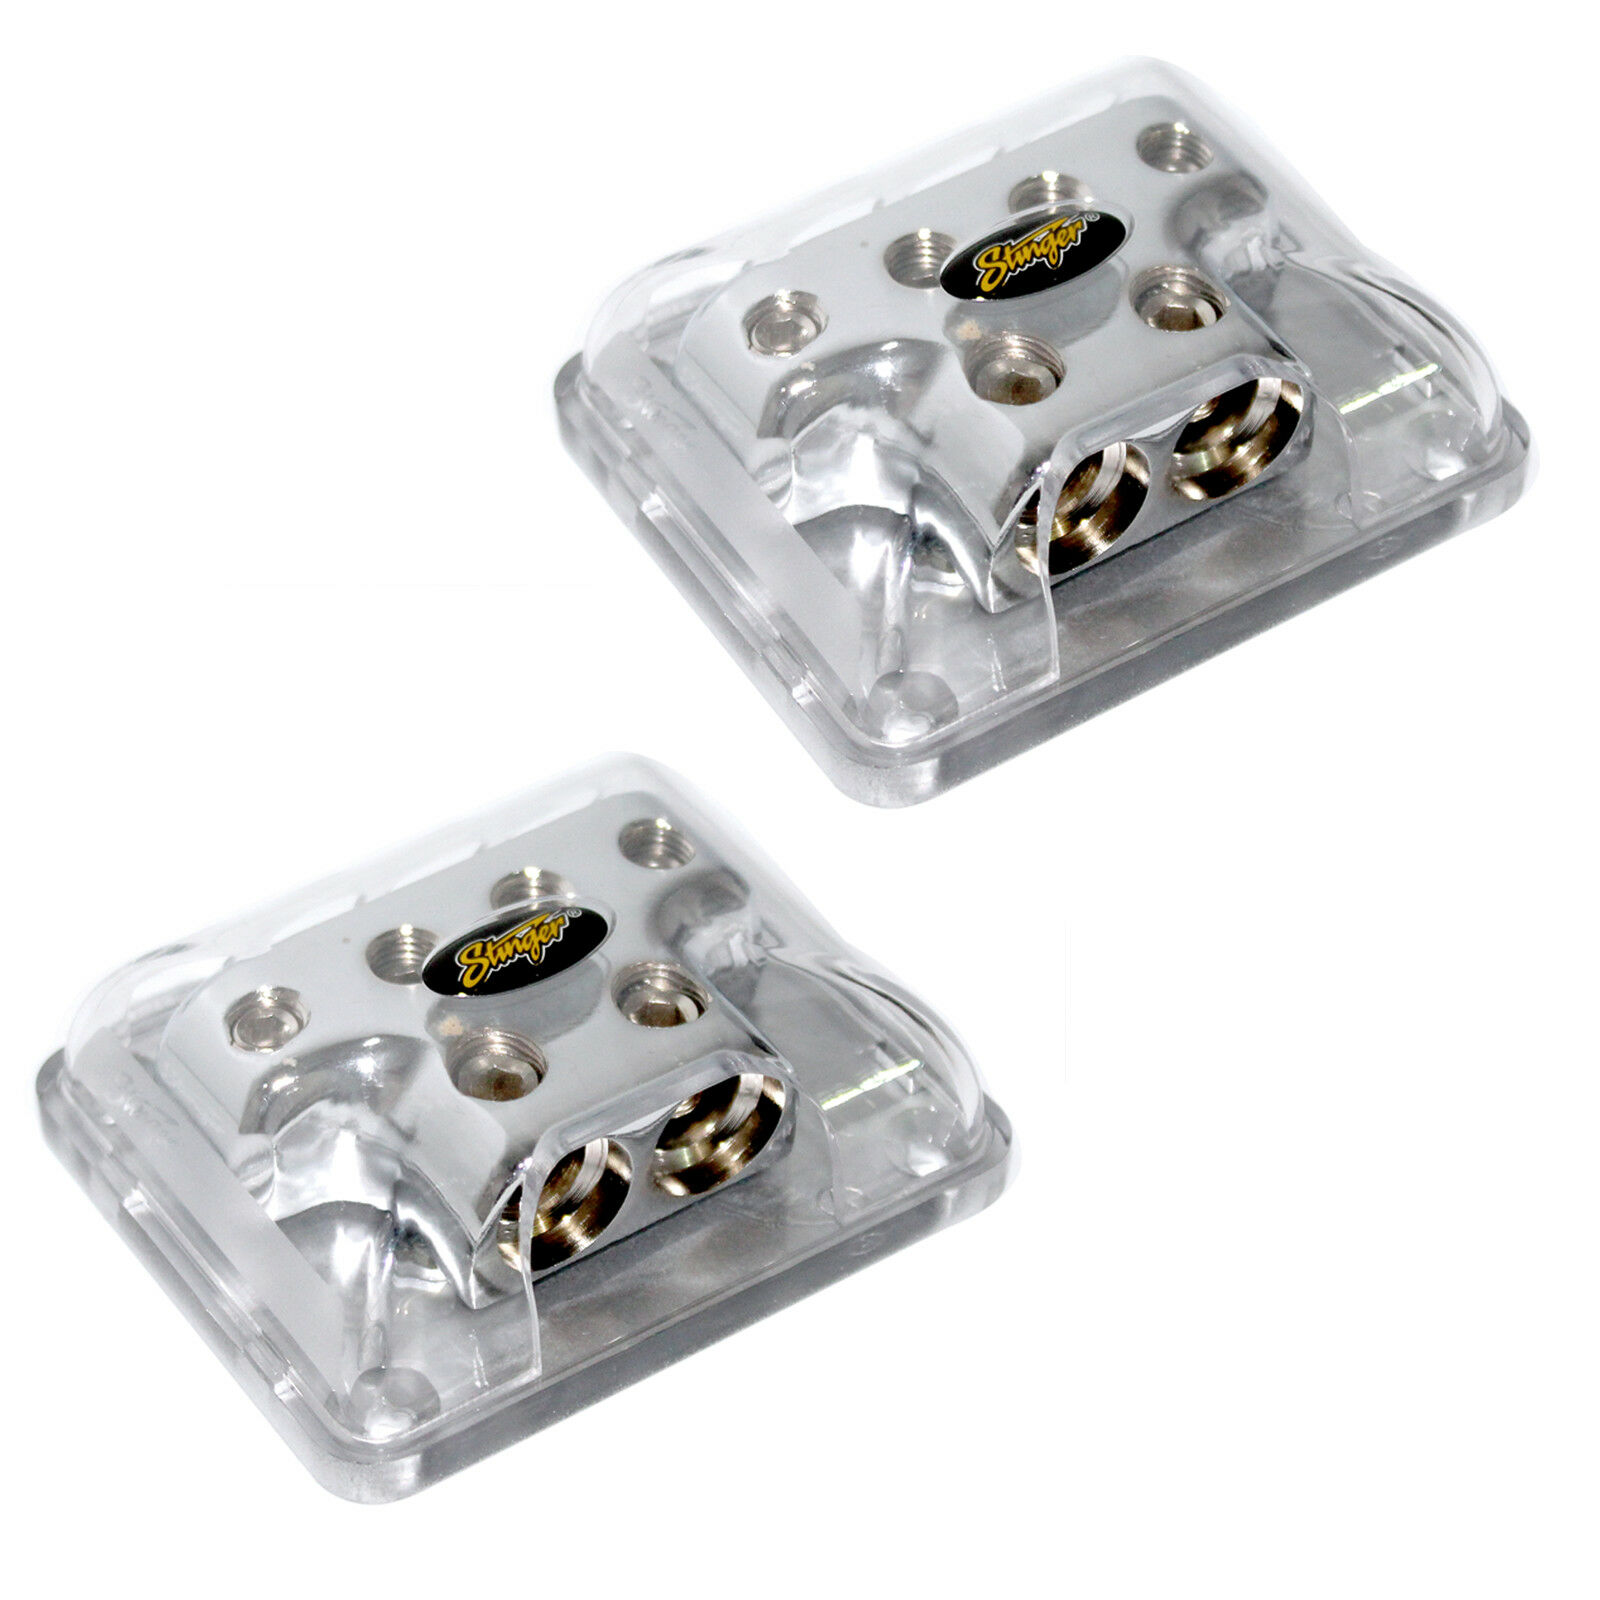 Two 2 Stinger 0 Gauge To 4 Power Ground Amp Wire Distribution Wiring Block Spd514 1 Of 4only 3 Available See More